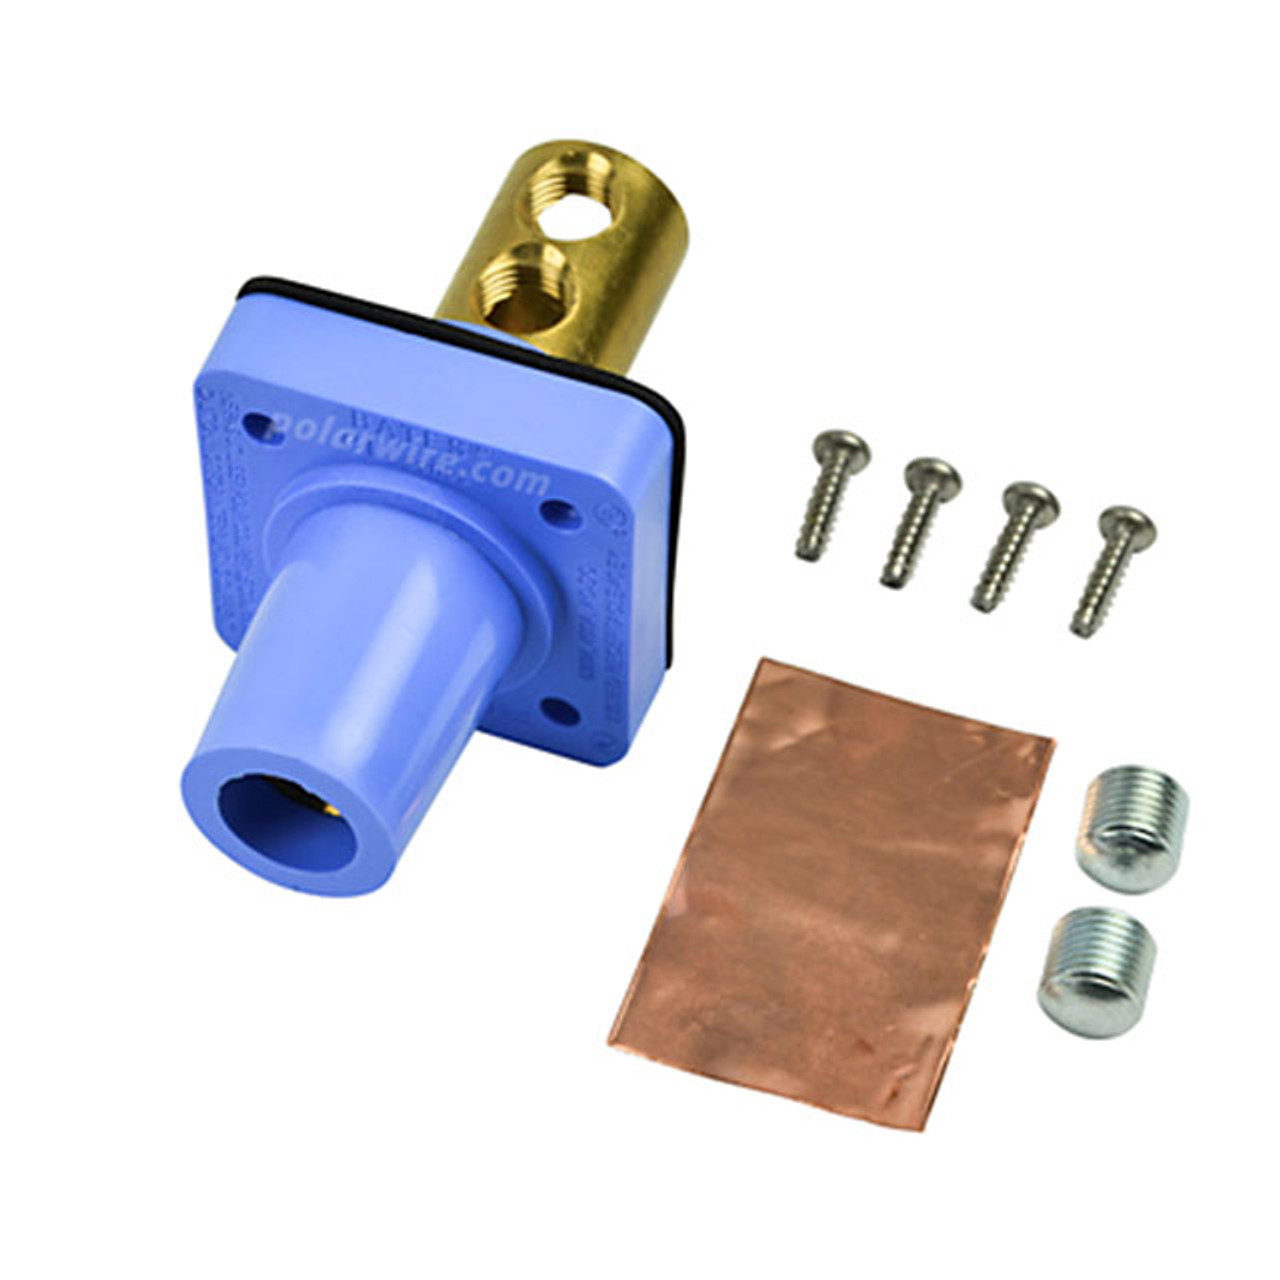 CAM LOCK 400A PANEL FEM BLUE SET SCREW 2/0-4/0